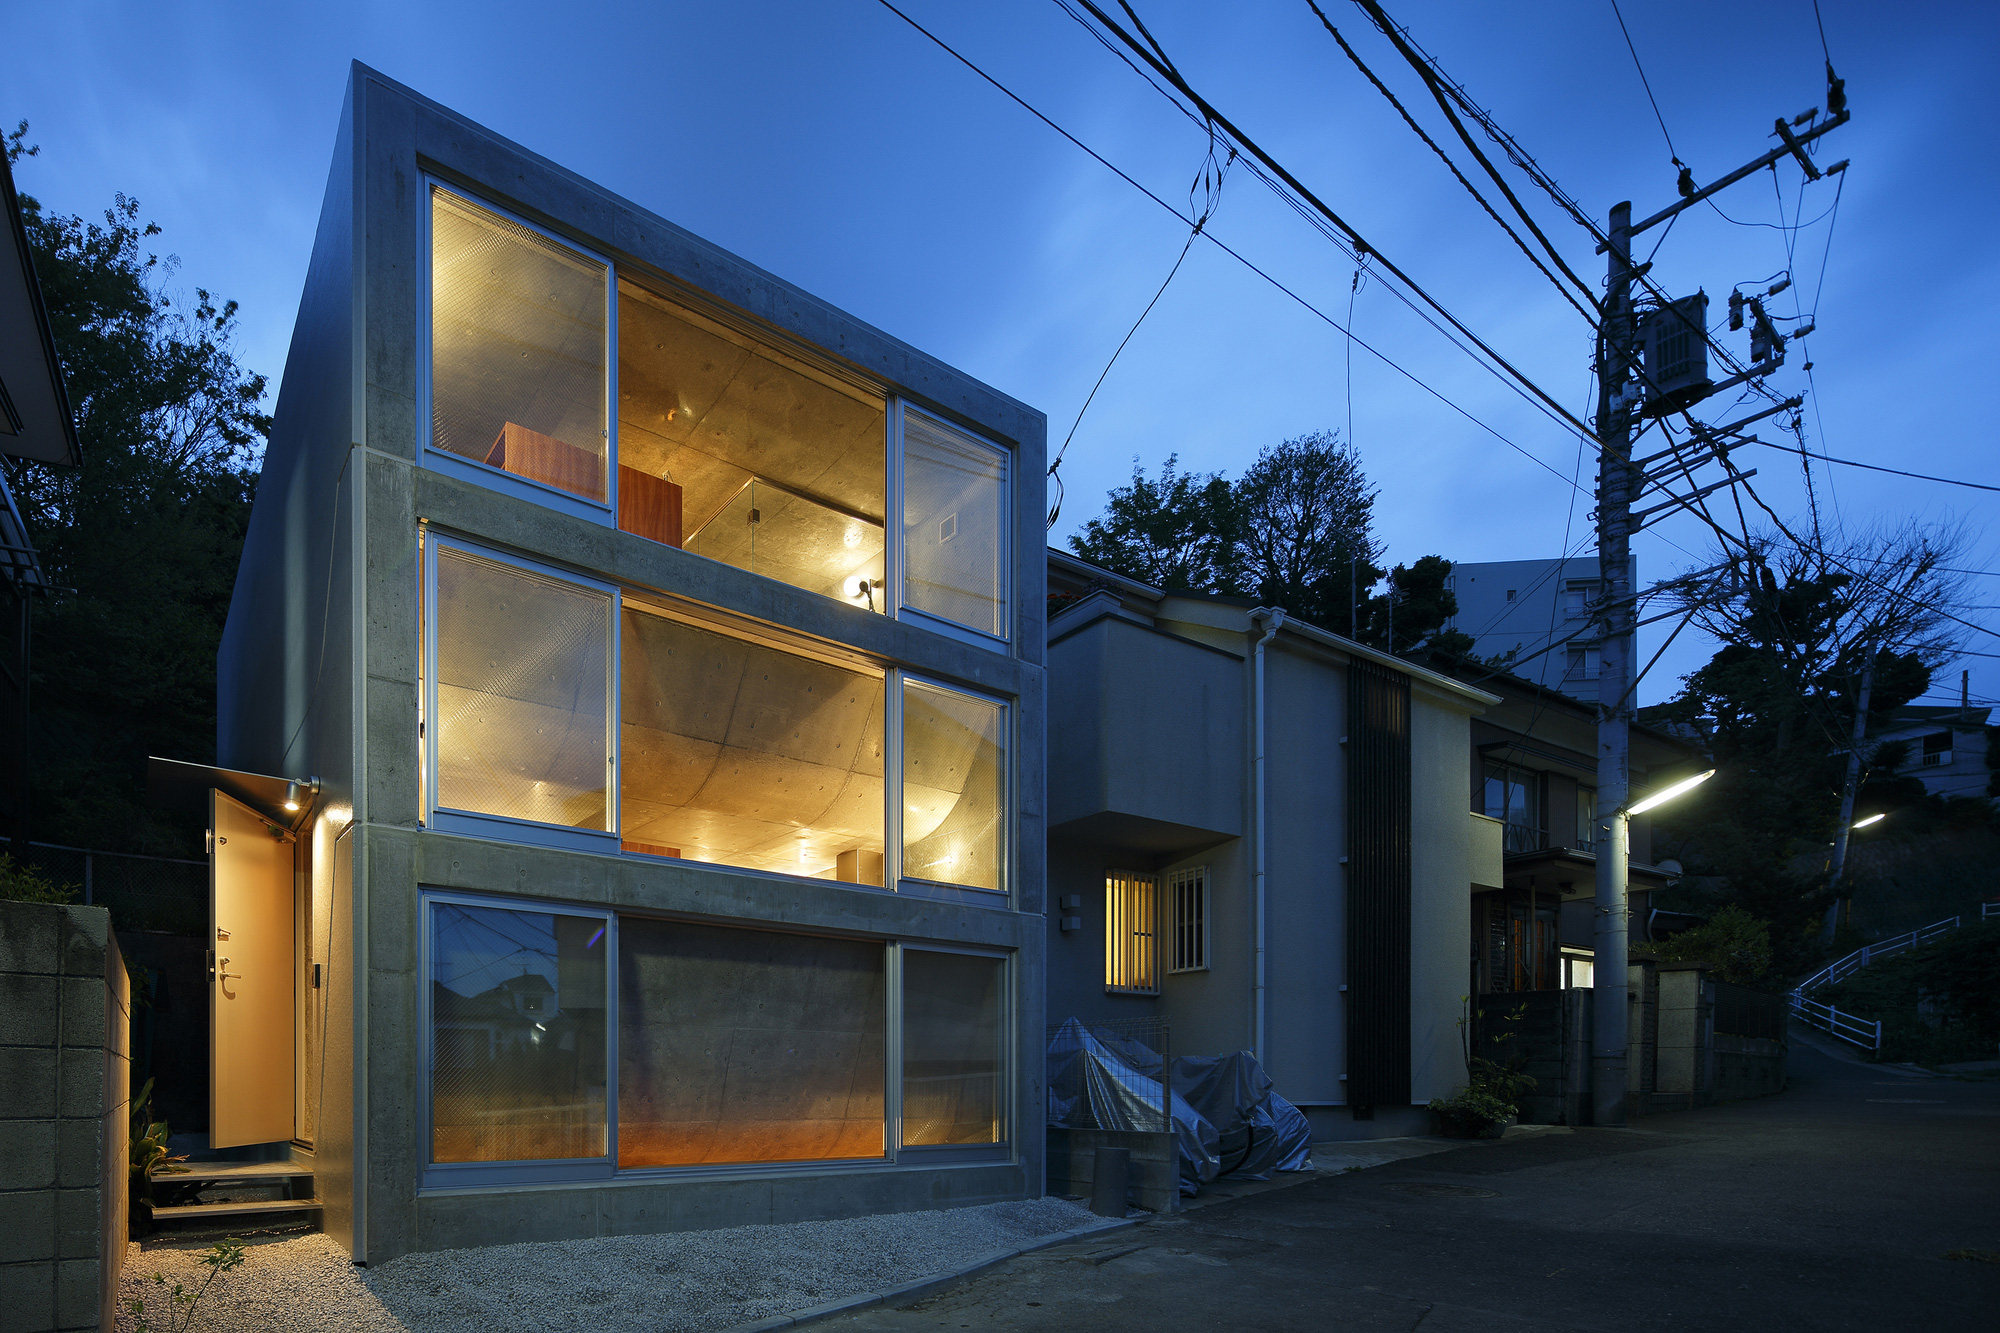 House in Byoubugaura / Takeshi Hosaka (14)